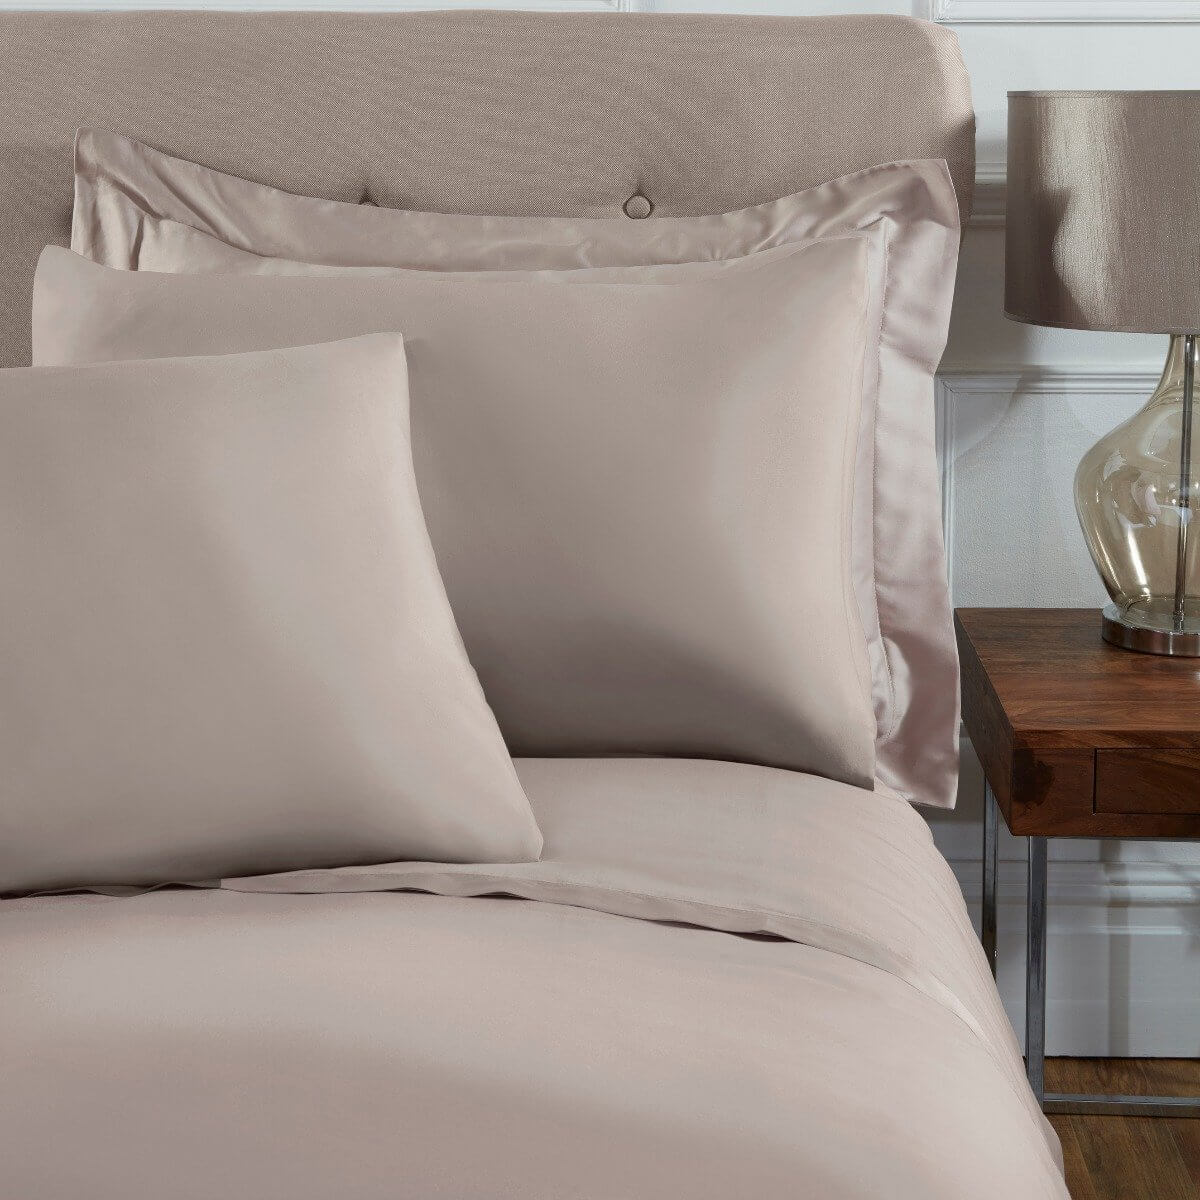 Sleepdown Pillowcase 100% Cotton Sateen Pack of Two Housewife Pillow Cover Set Anti-Allergy 300 Thread Count Luxury Bed Linen - Mink- 50 x 75cm